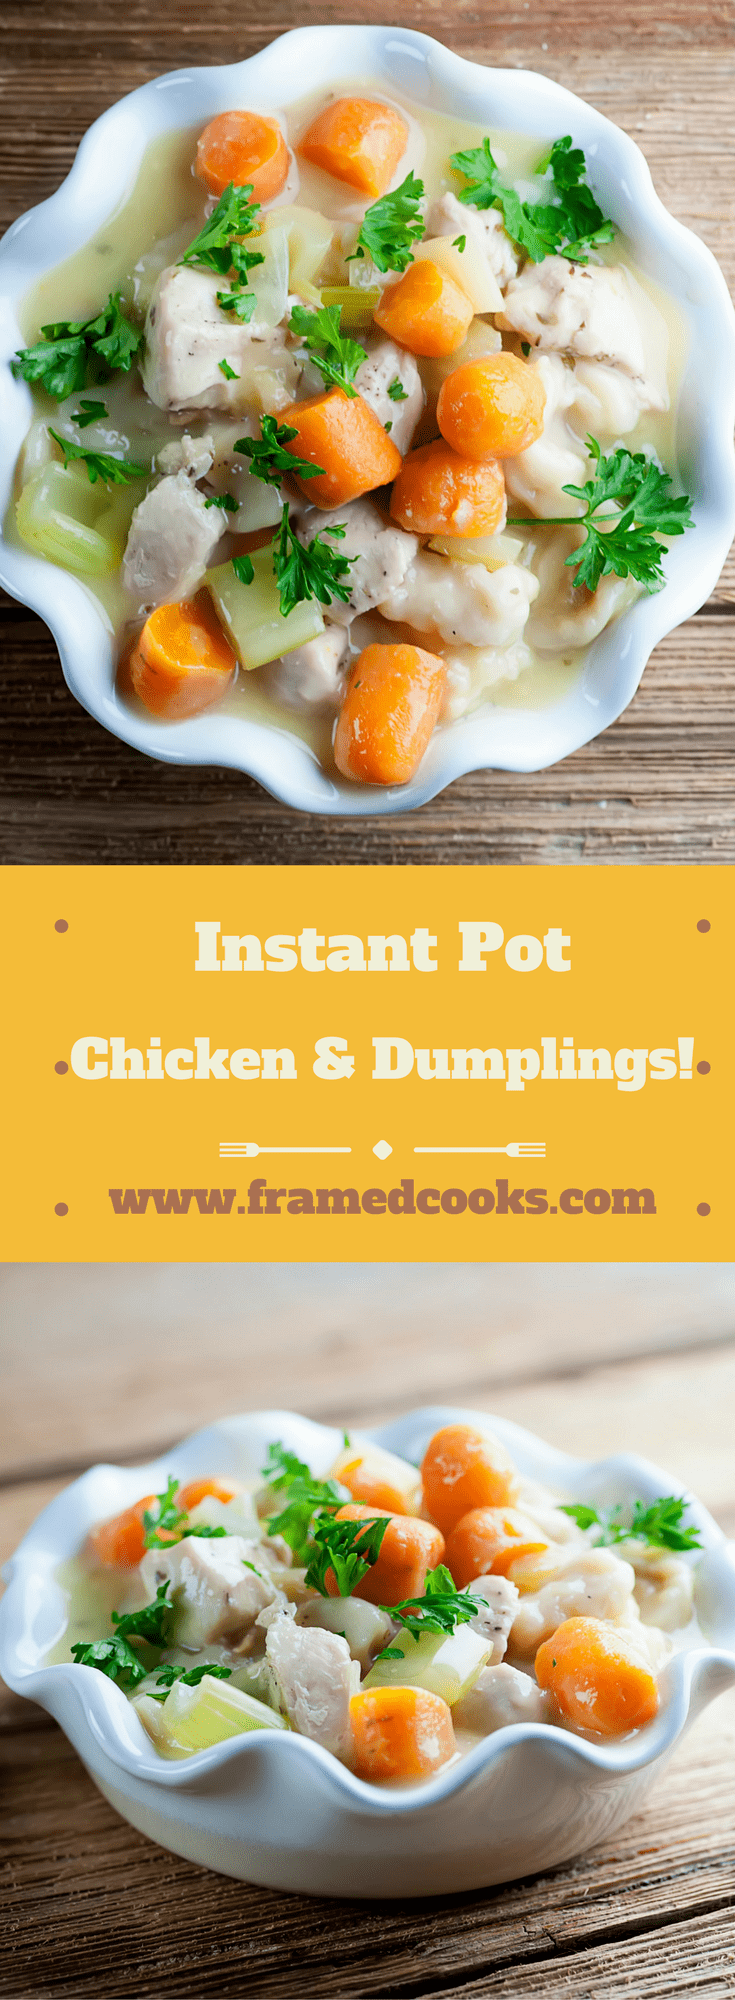 Make this comfort food classic the speedy way with this easy recipe for Instant Pot chicken and dumplings, and have it on the supper table in no time!